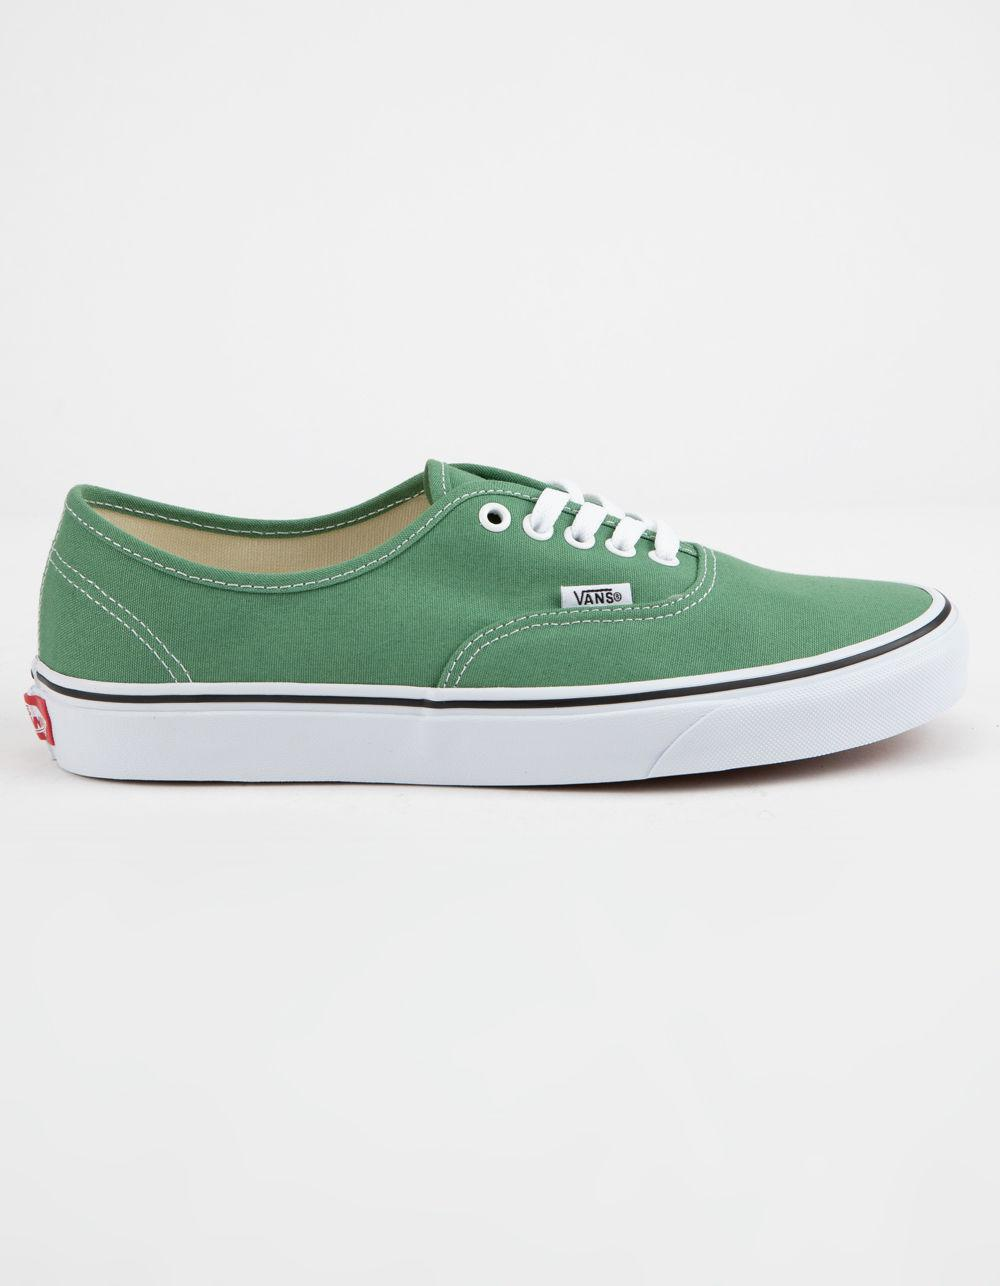 520bf376bce31b Lyst - Vans Authentic Deep Grass Green   True White Shoes in Green ...